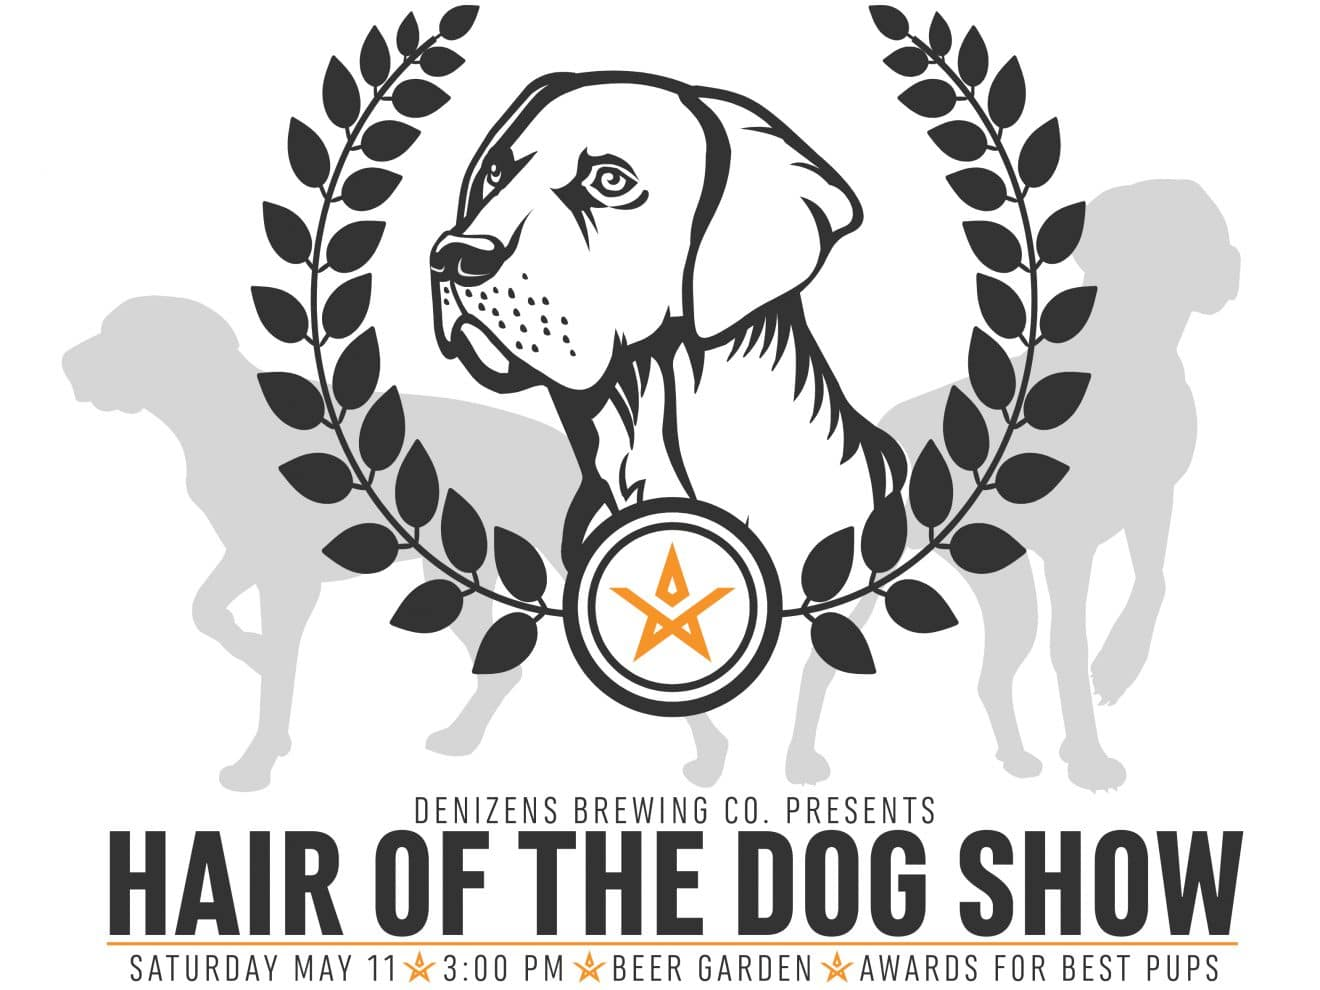 Hair of the Dog Show